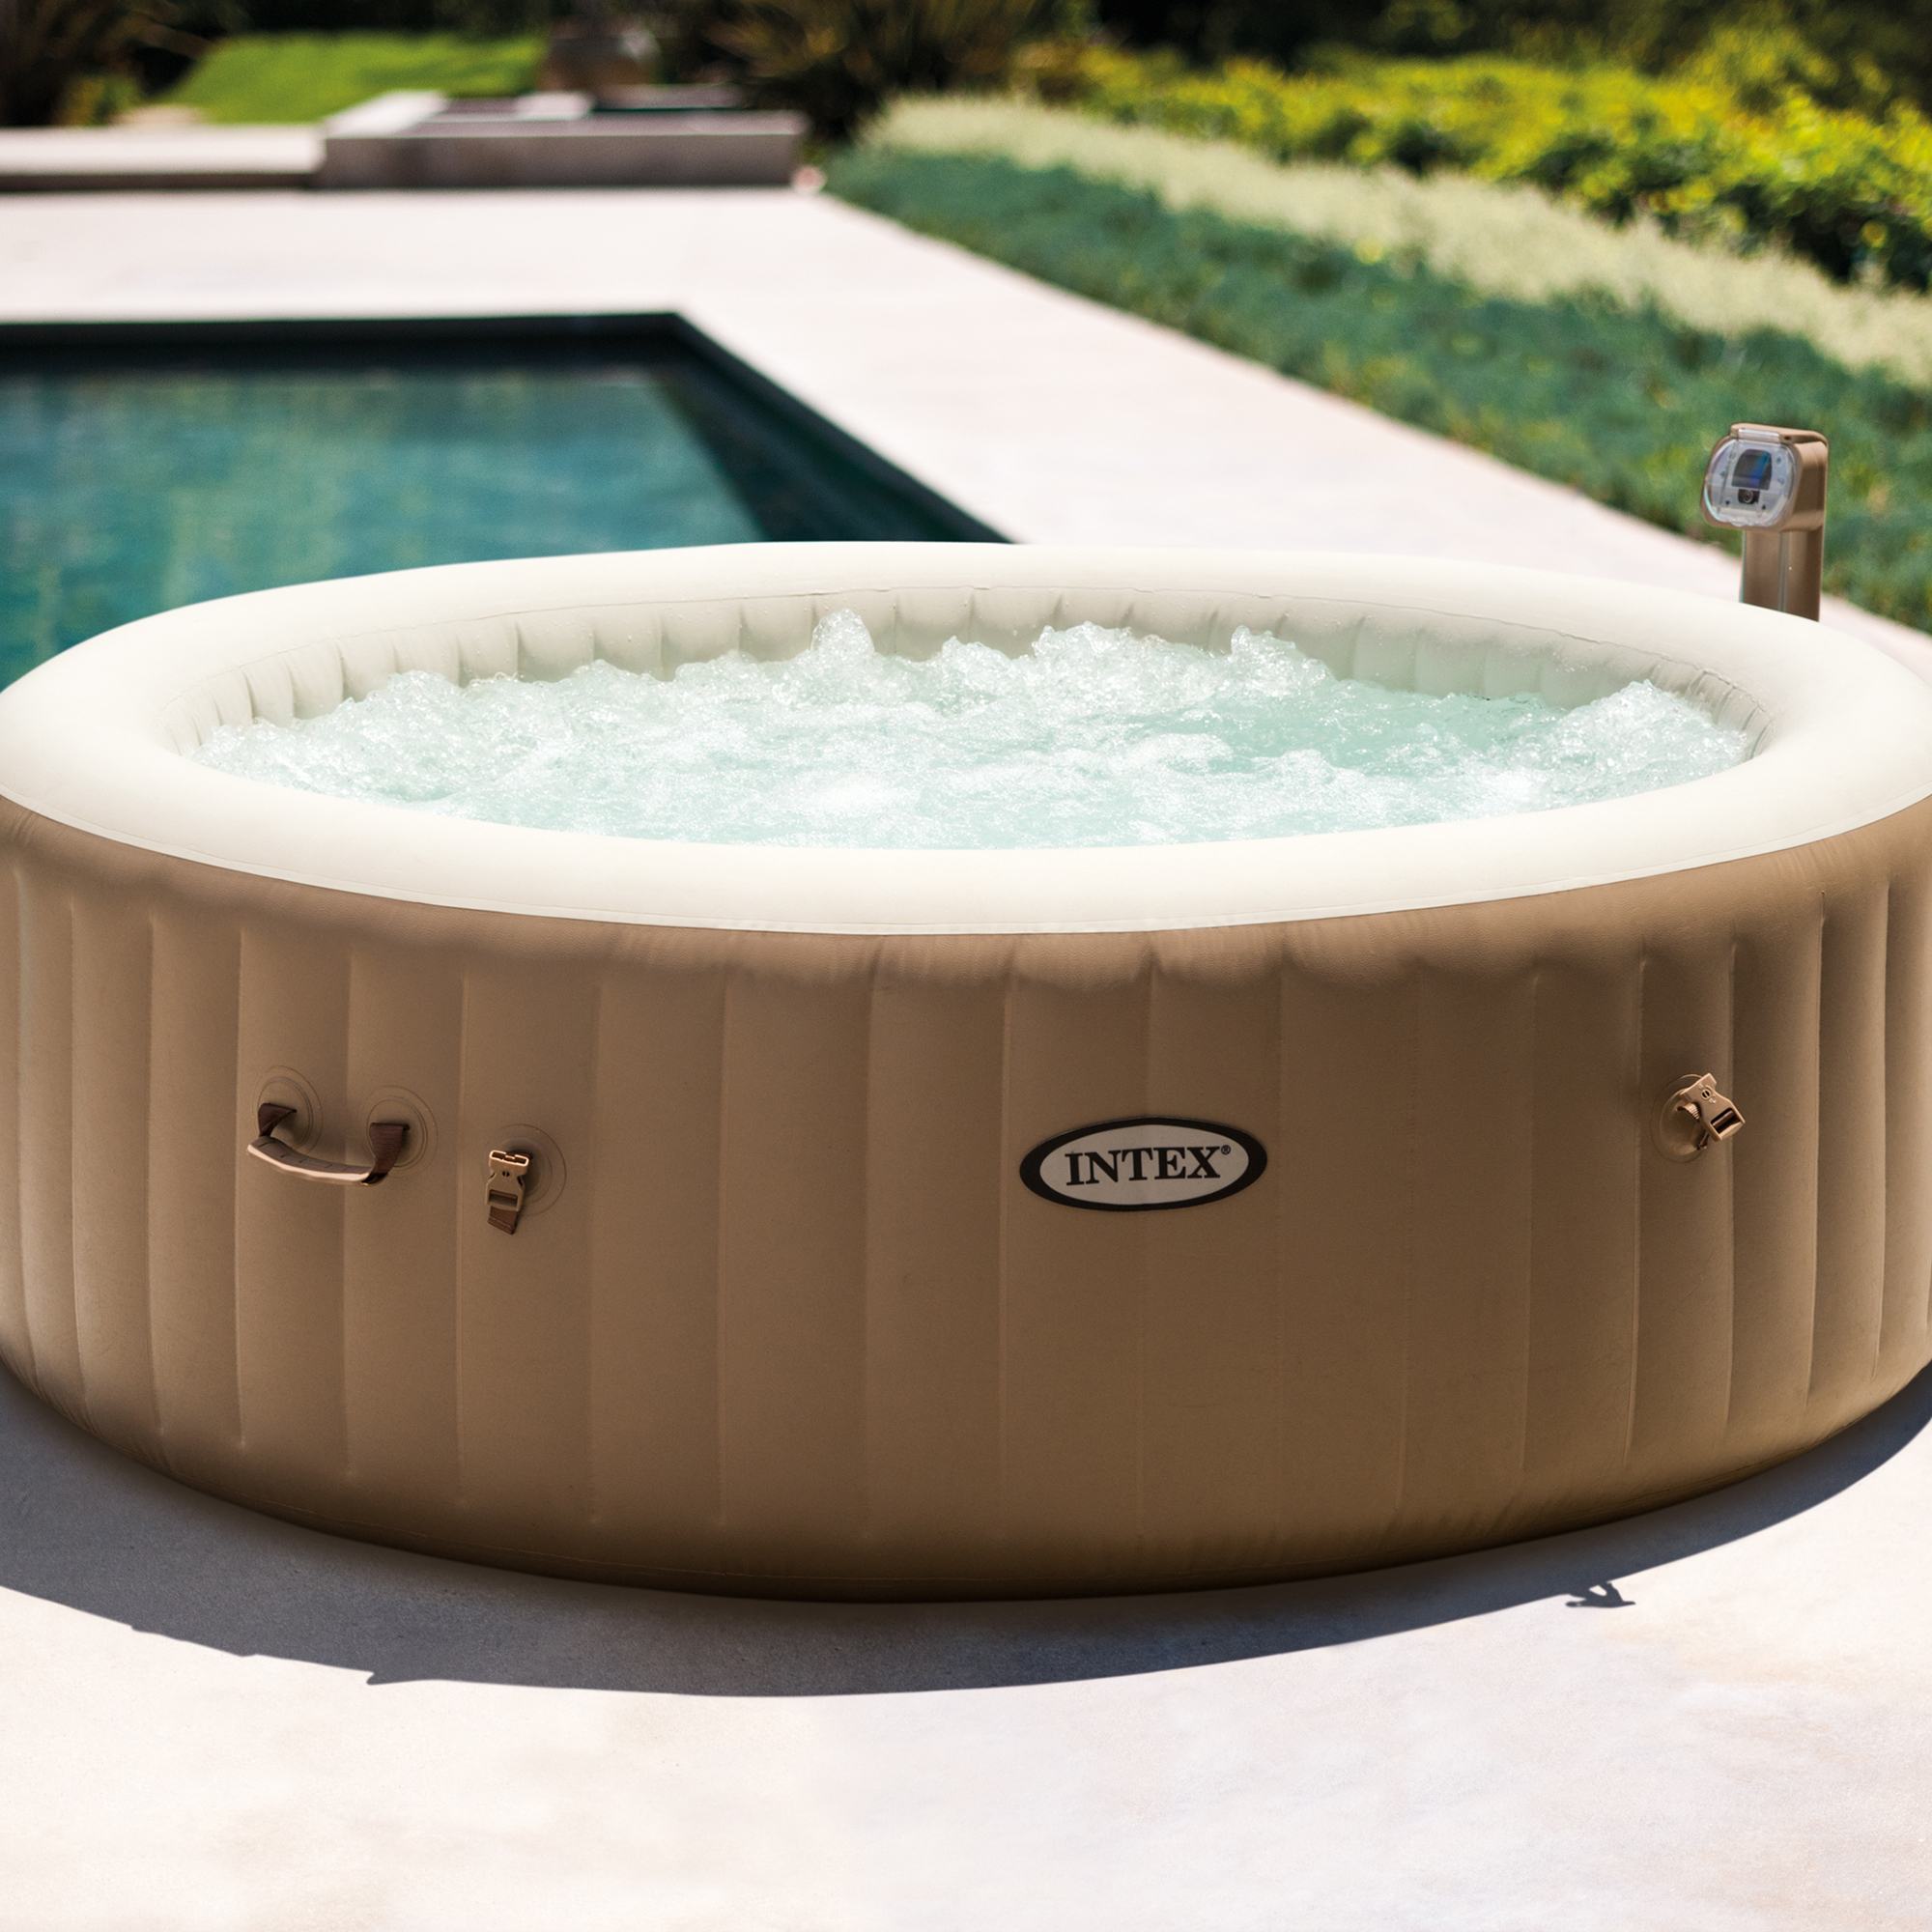 spas bc fantasy tubs portable hotspring side sand freeflow person hot abbotsford spring product tub azure